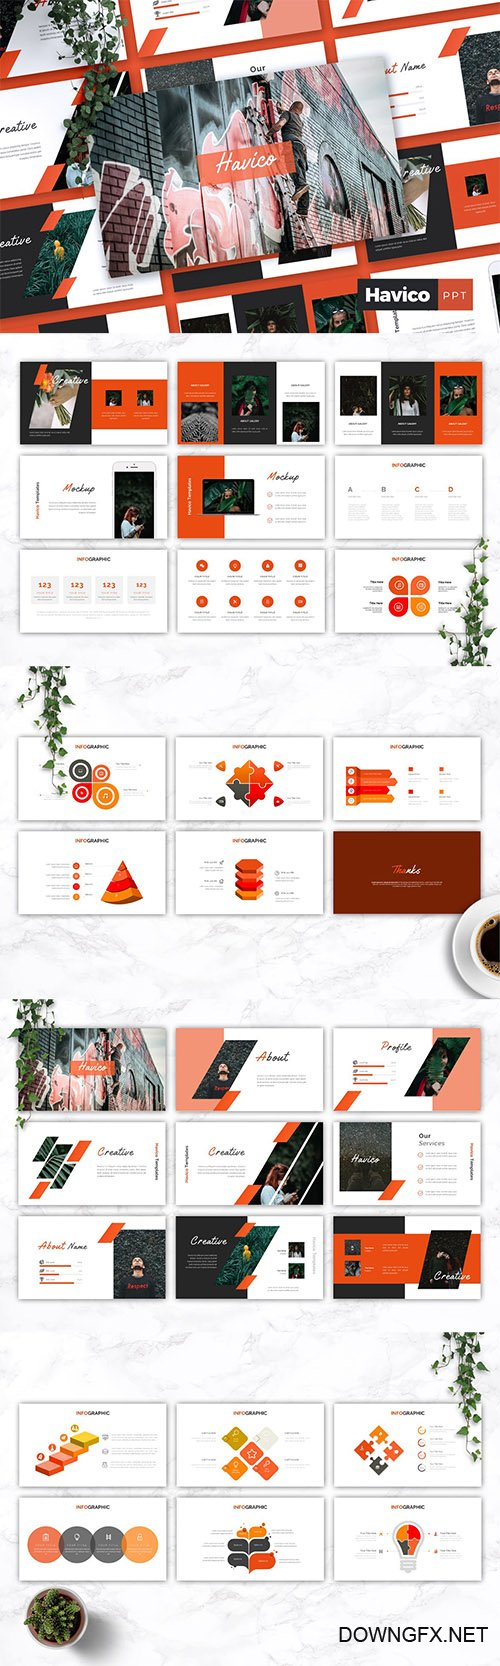 HAVICO - Creative Powerpoint Keynote and Google Slides Templates